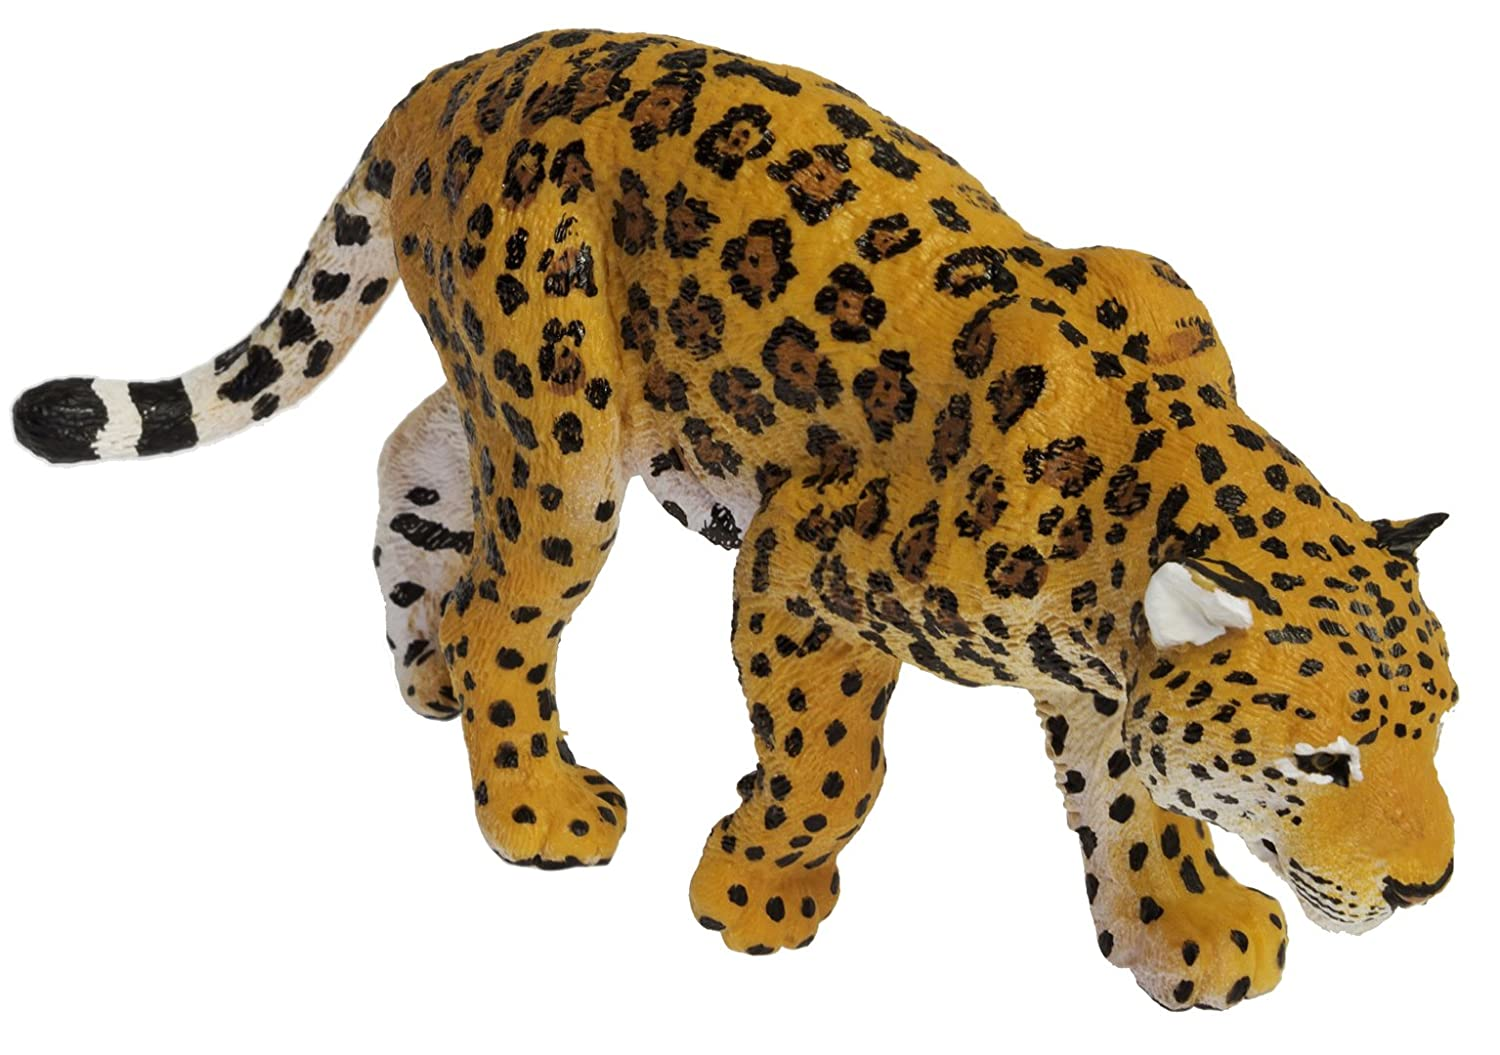 jesonn kids from hobbies lifelike pillows in for cheetah soft leopard item gifts stuffed brown plush toys realistic animals